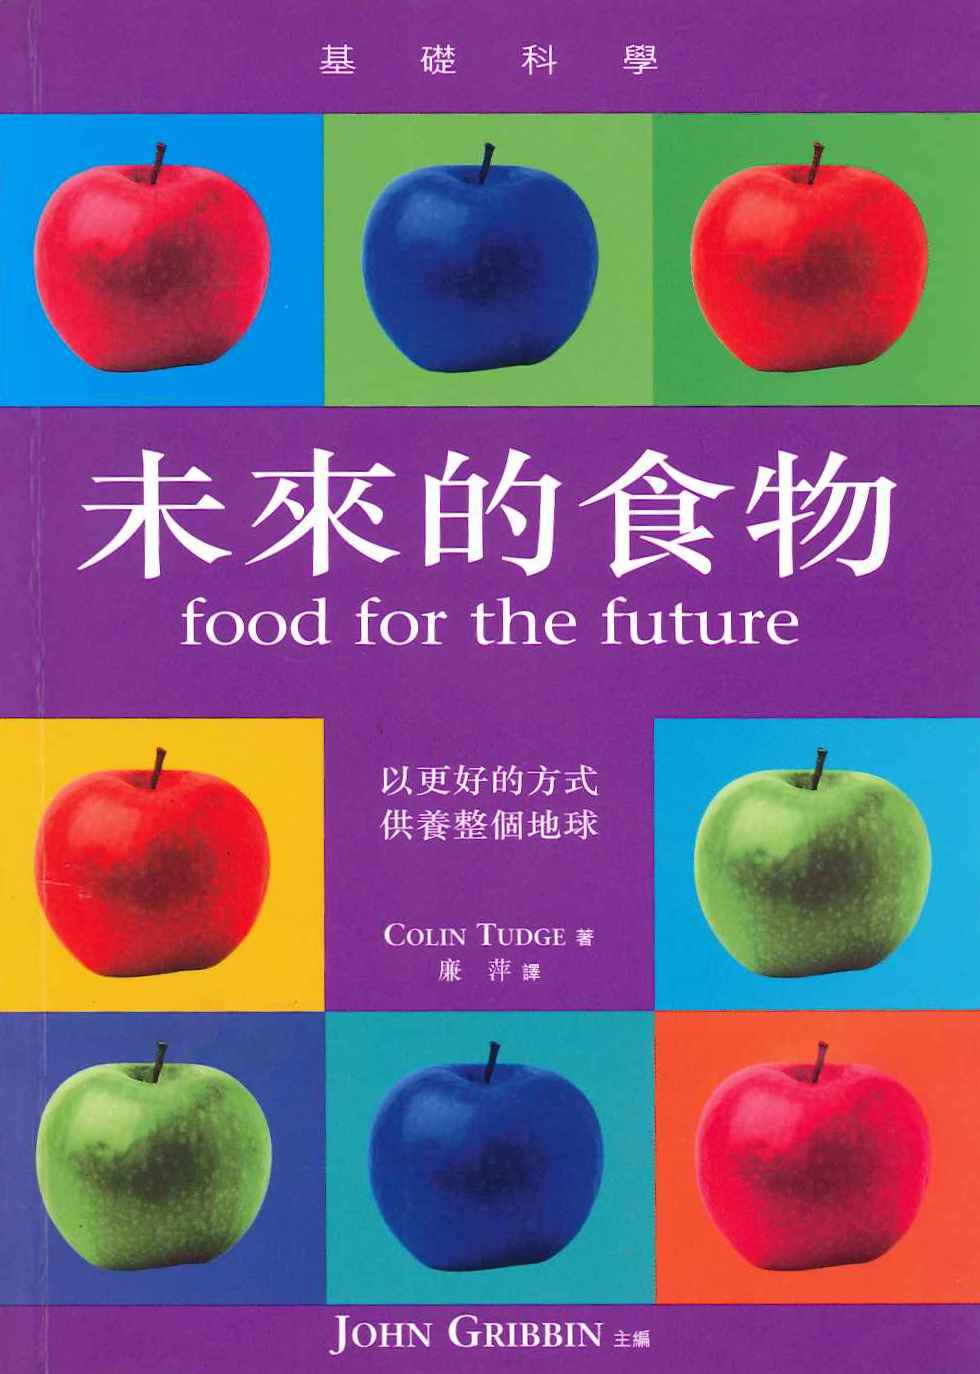 未來的食物 FOOD FOR THE FUTURE